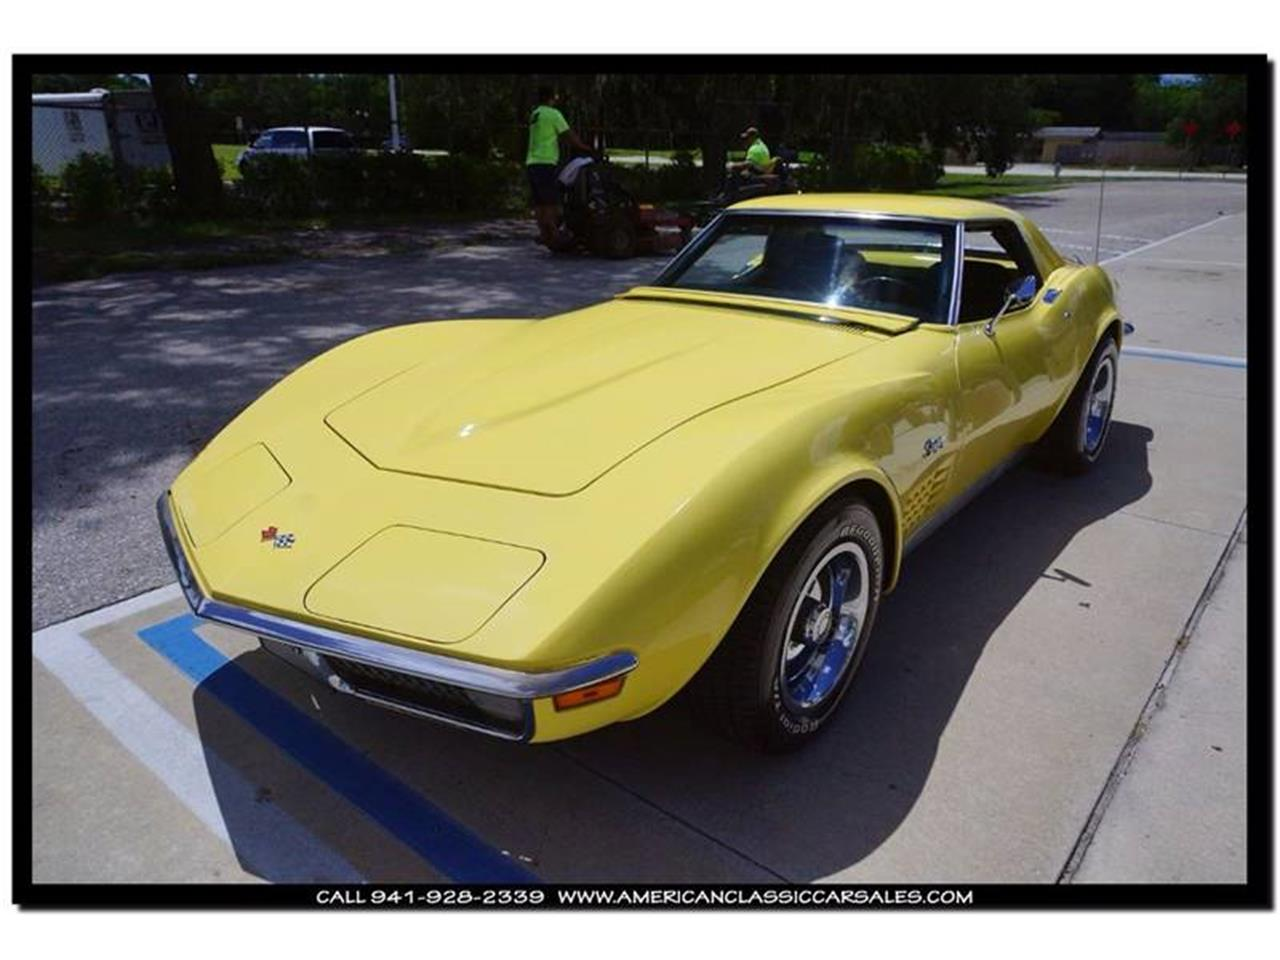 Large Picture of 1970 Chevrolet Corvette located in Florida - $35,900.00 Offered by American Classic Car Sales - JC5K